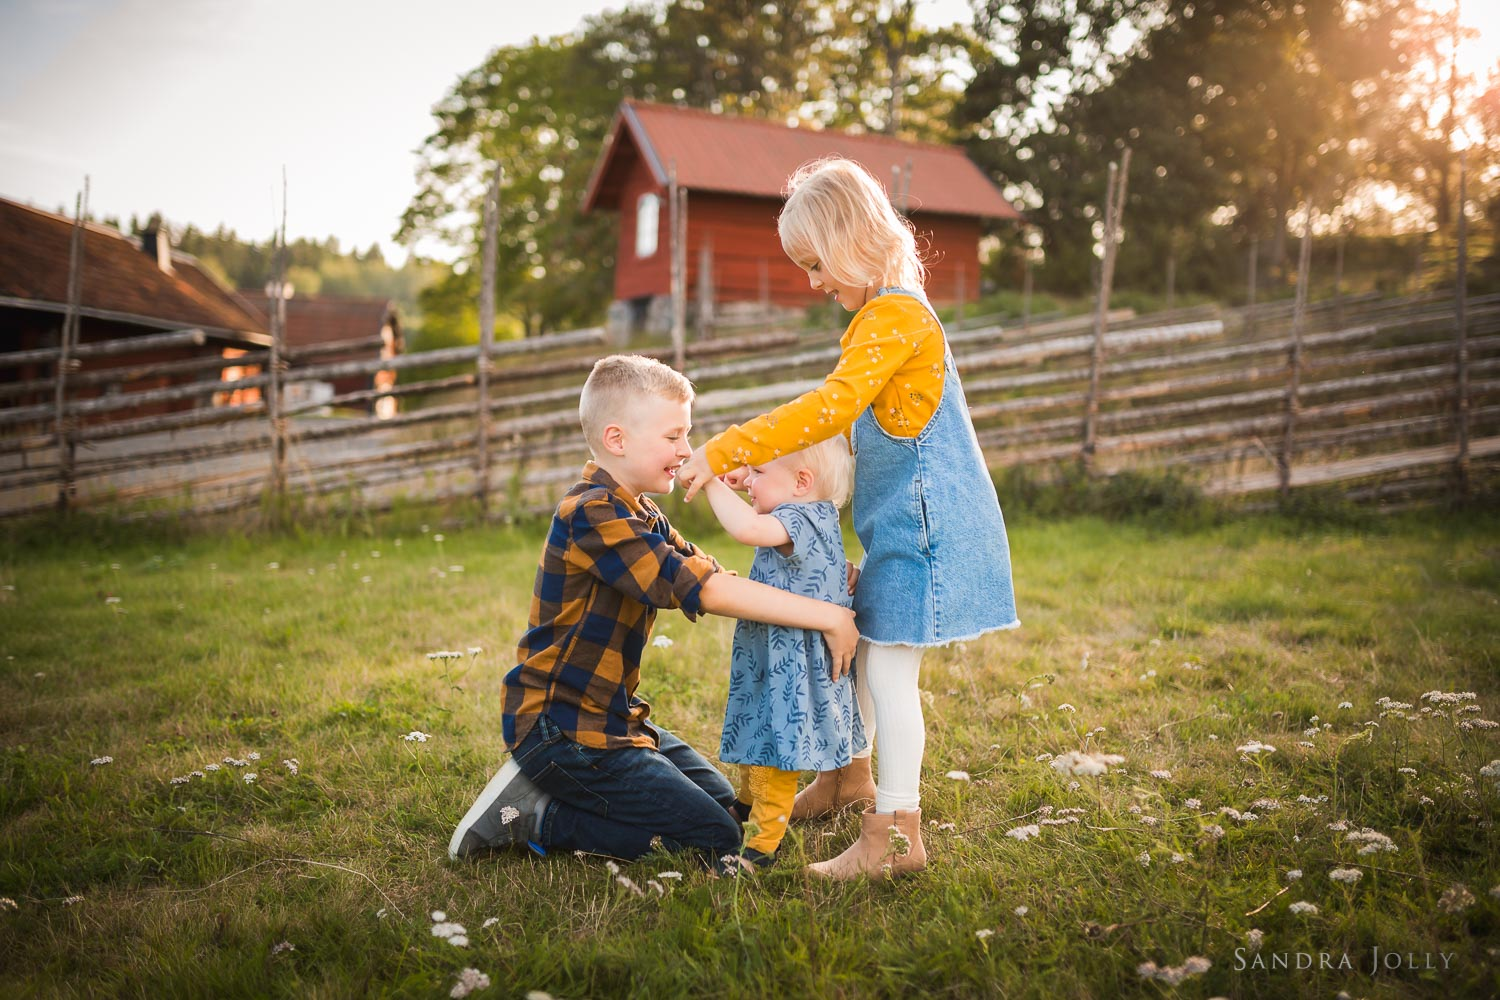 sibling-outdoor-summer-photo-session-stockholm-by-familjefotograf-sandra-jolly.jpg